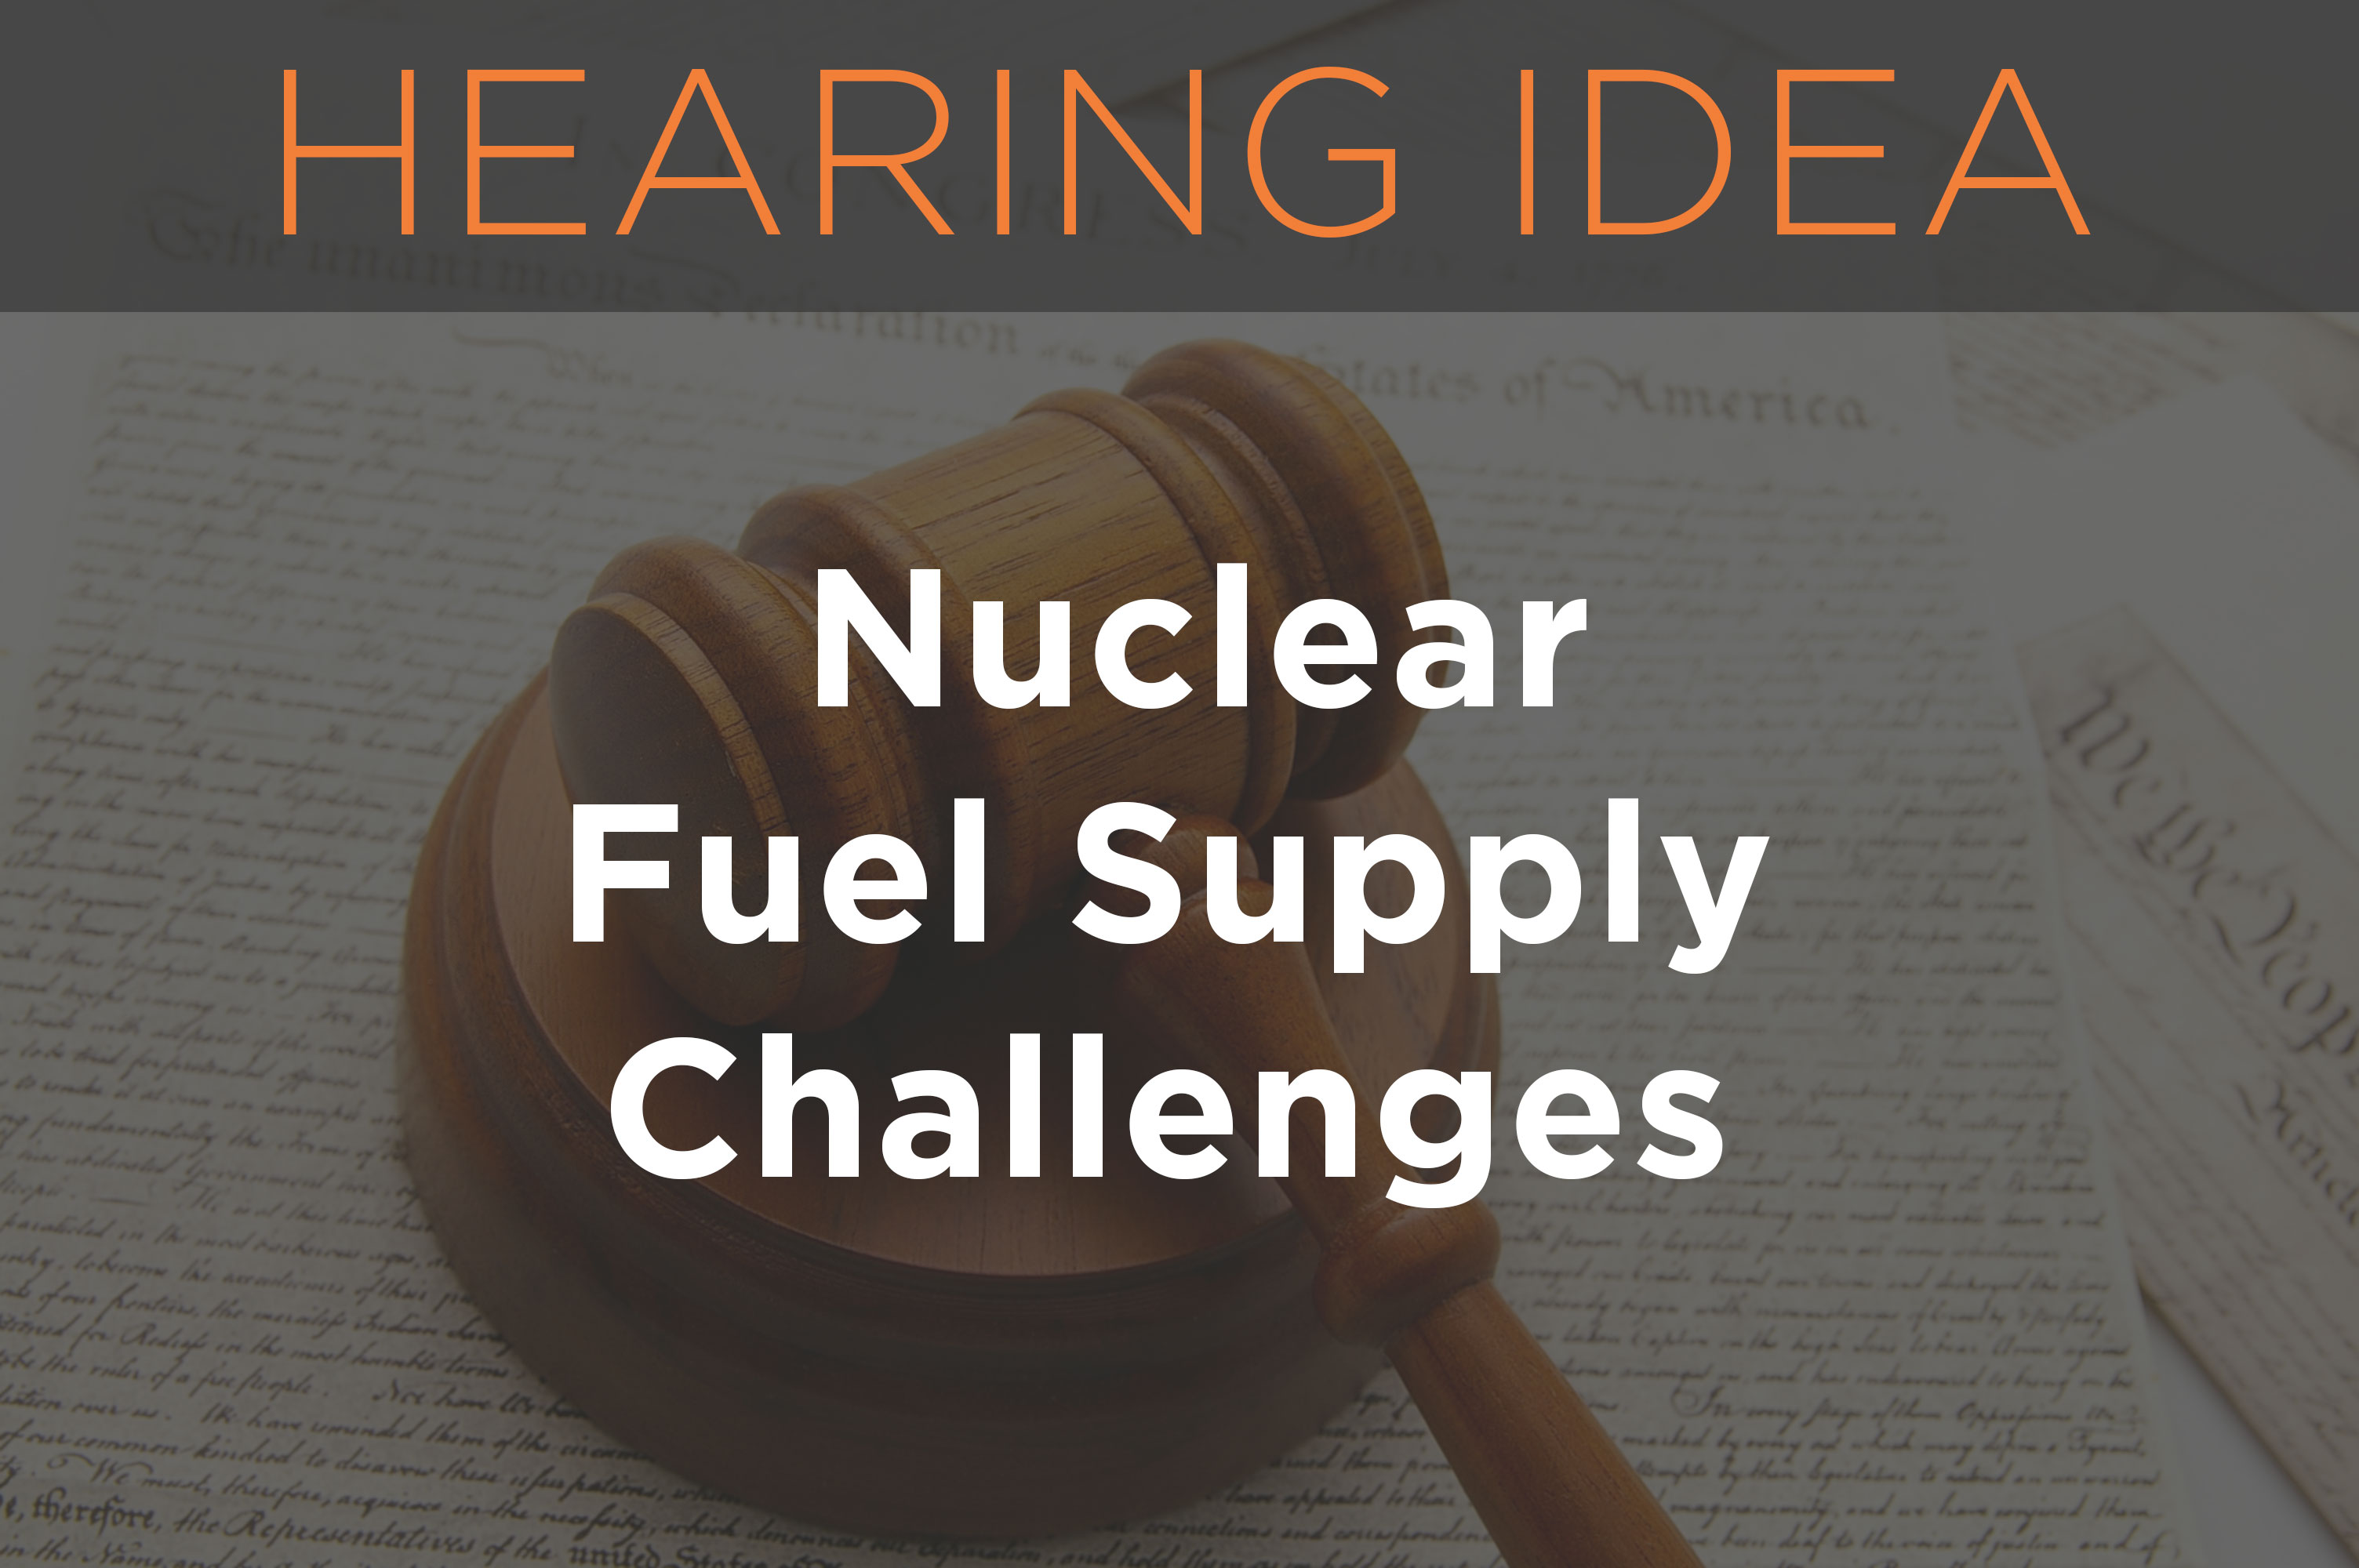 Hearing Idea: Nuclear Fuel Supply Challenges